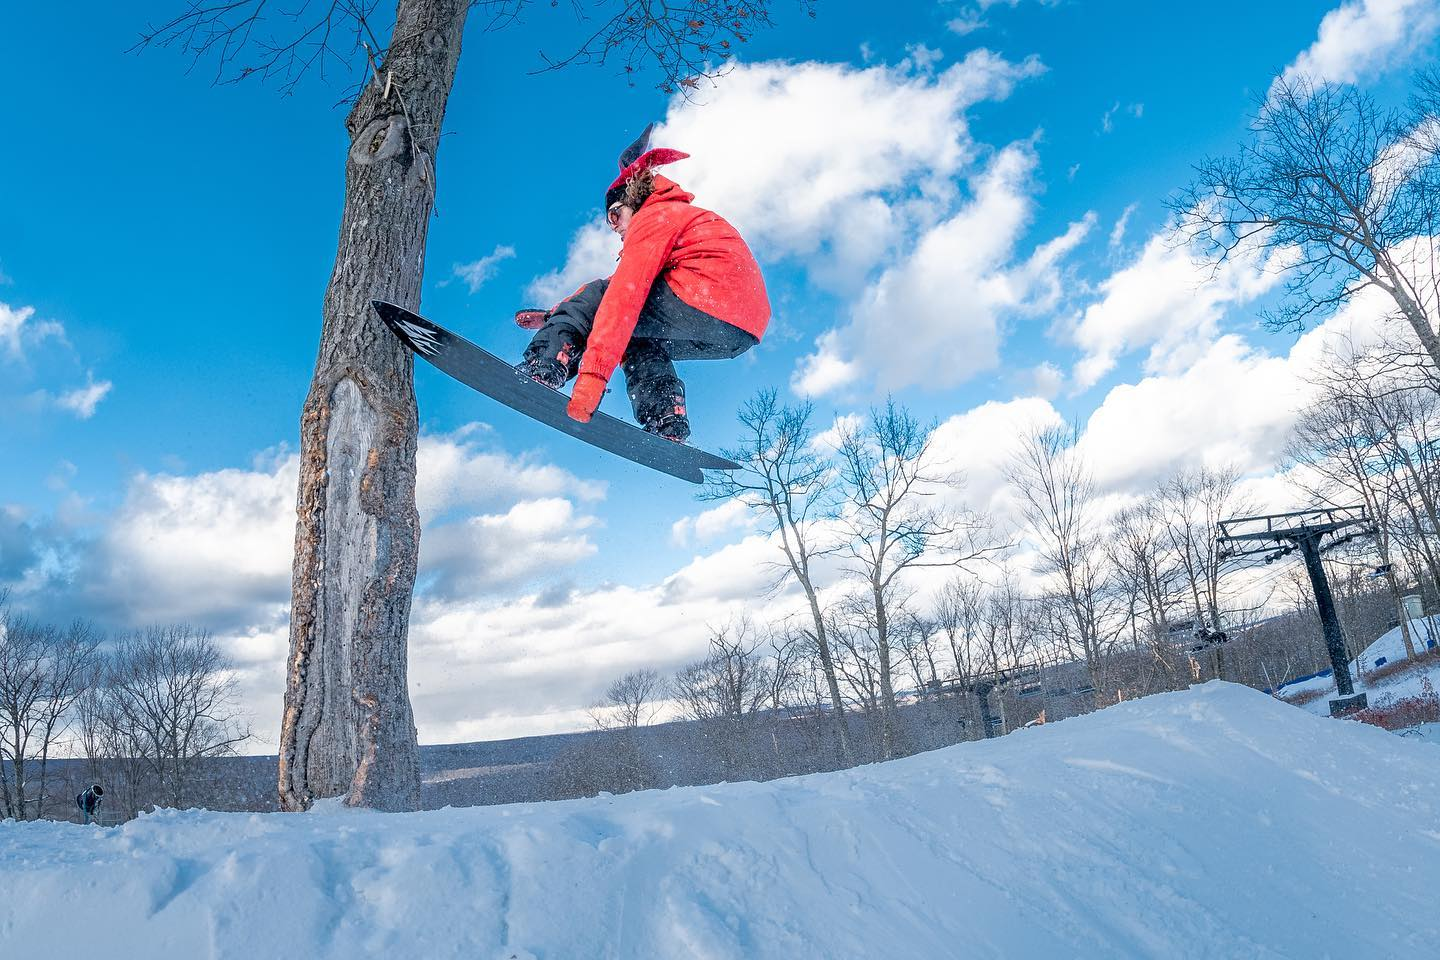 Image of a snowboarder in red catching air at Big Boulder Park in Pennsylvania